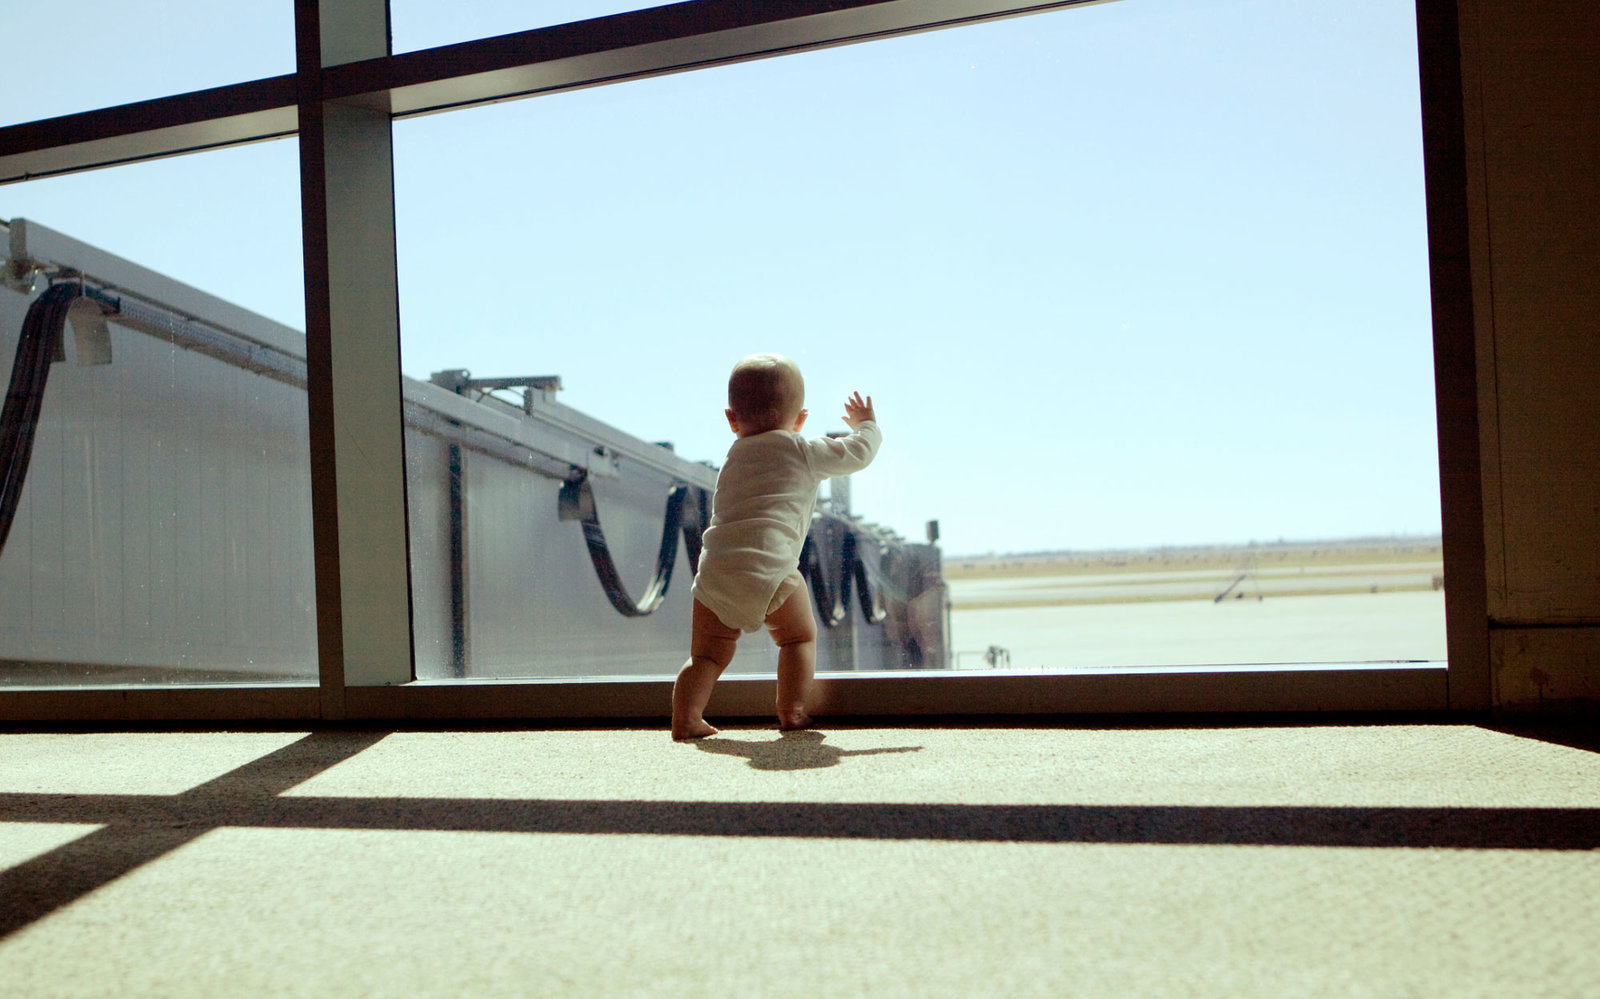 How To Get Your Baby A Passport Baby Airport Travel Passport